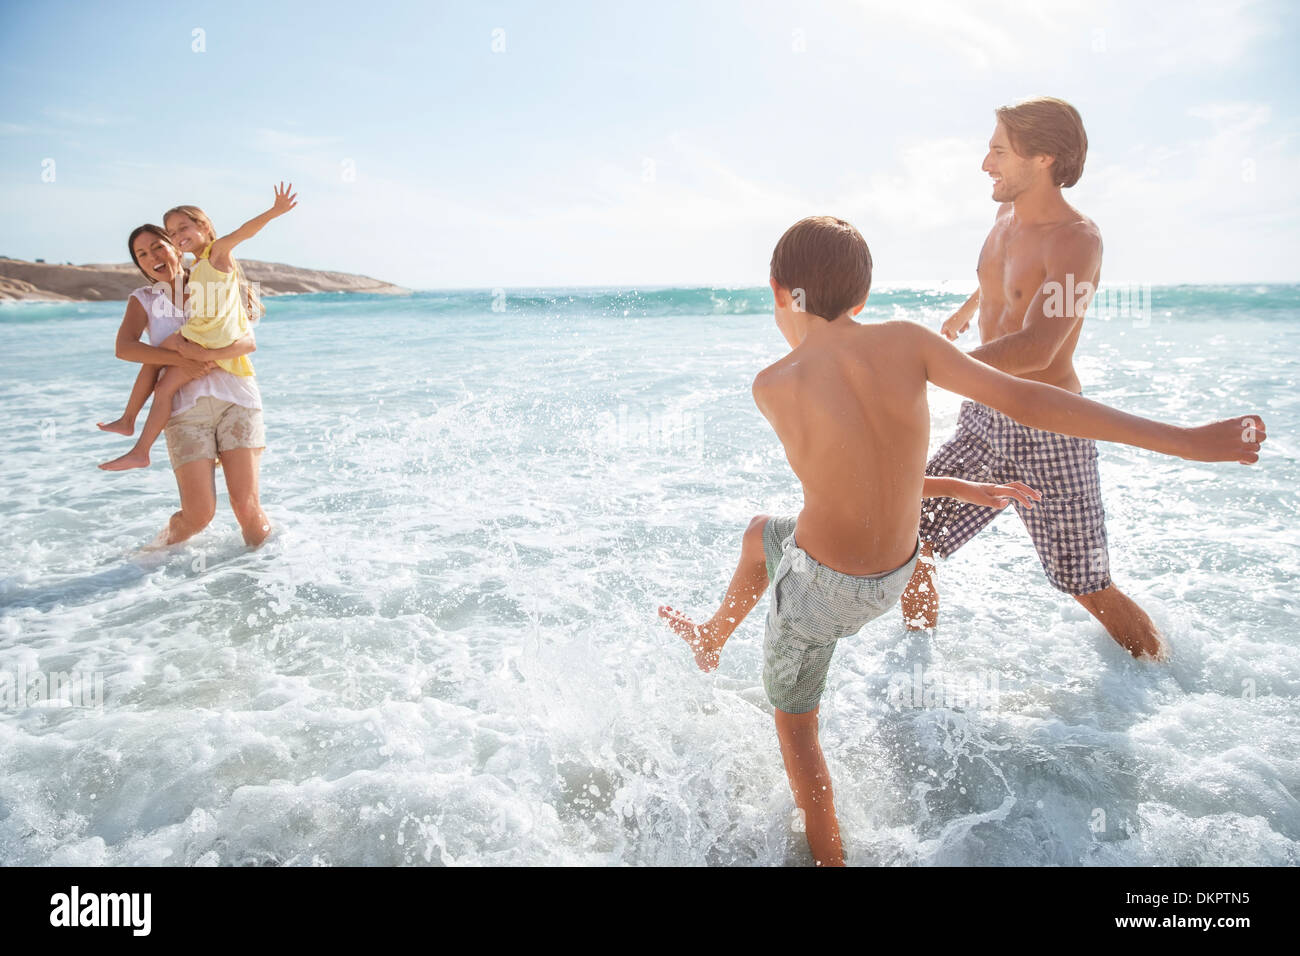 Family playing together in waves on beach - Stock Image